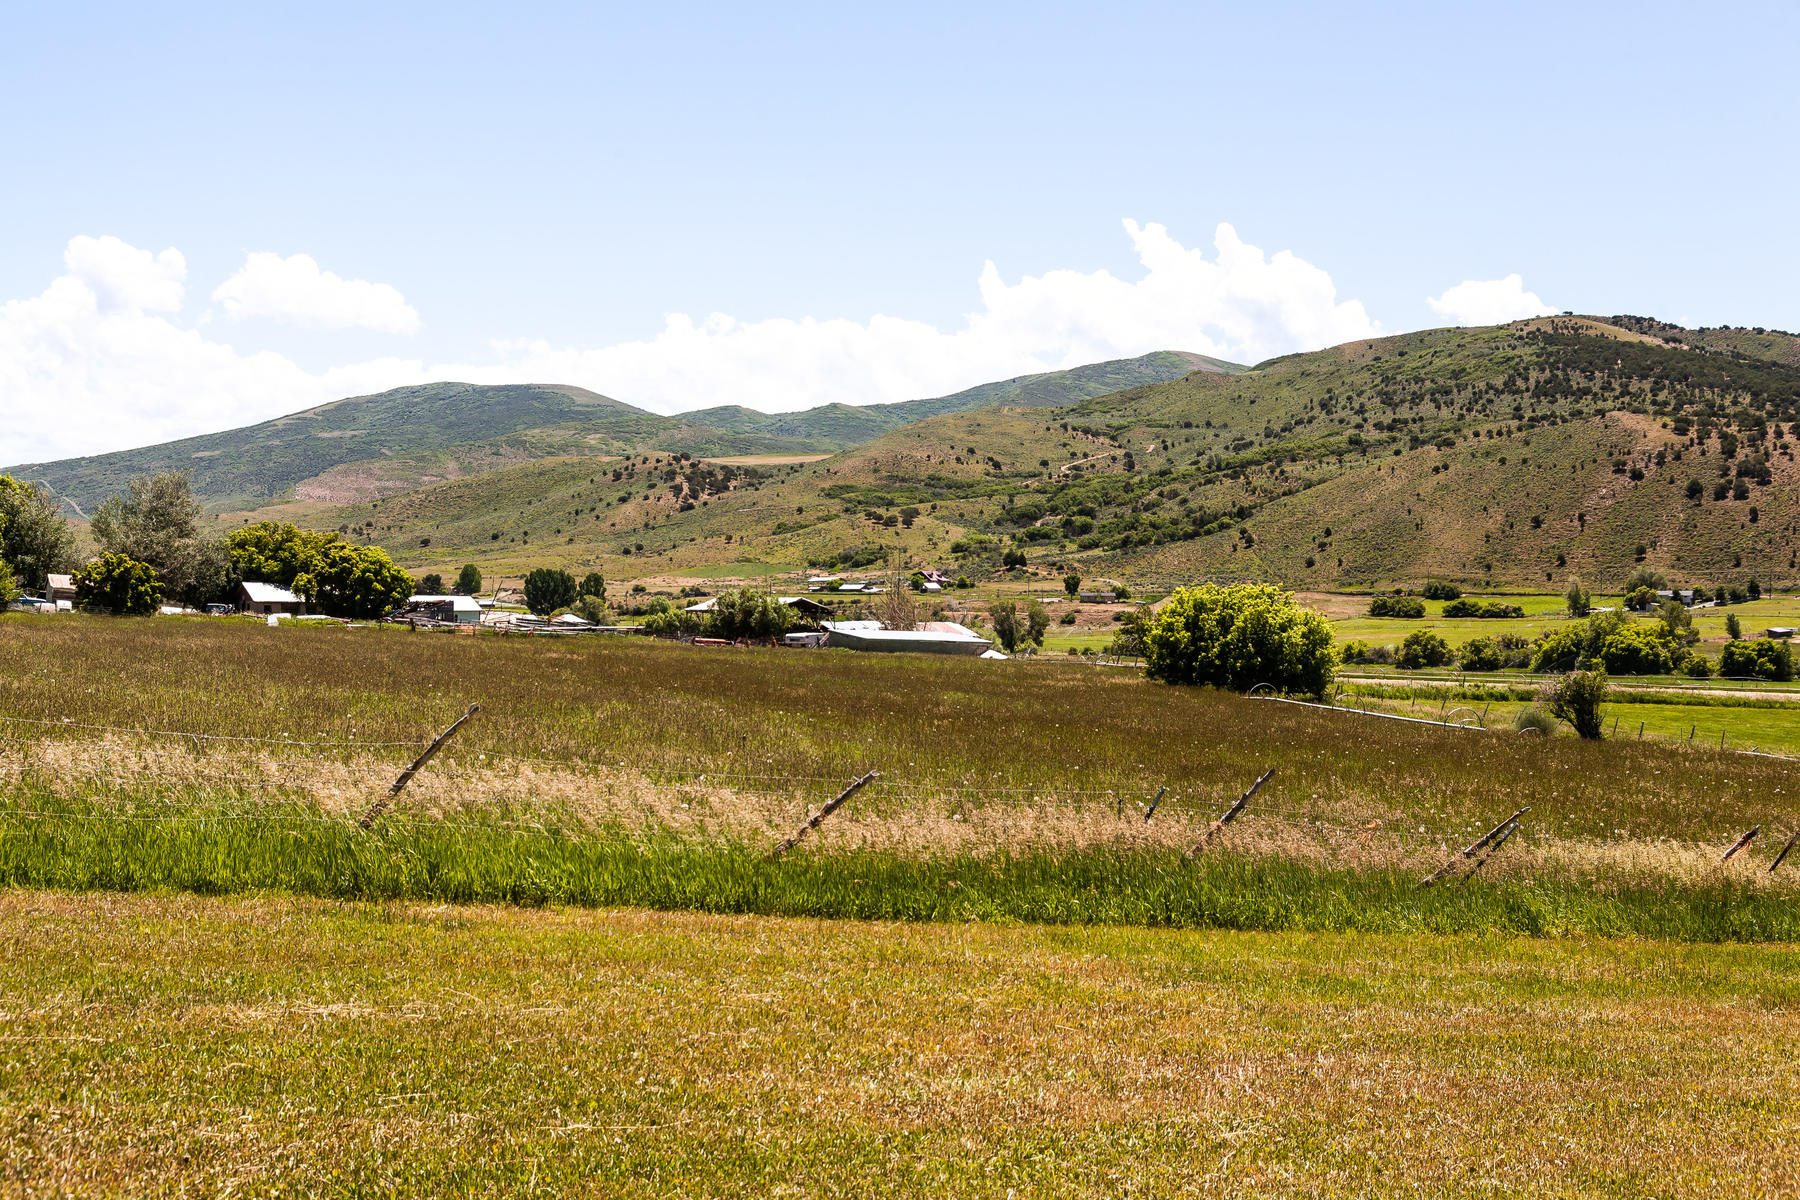 Land for Sale at 6.31 Acre Irrigated Buildable Lot Fronts Chalk Creek 618 E Chalk Creek Road, Coalville, Utah 84017 United States